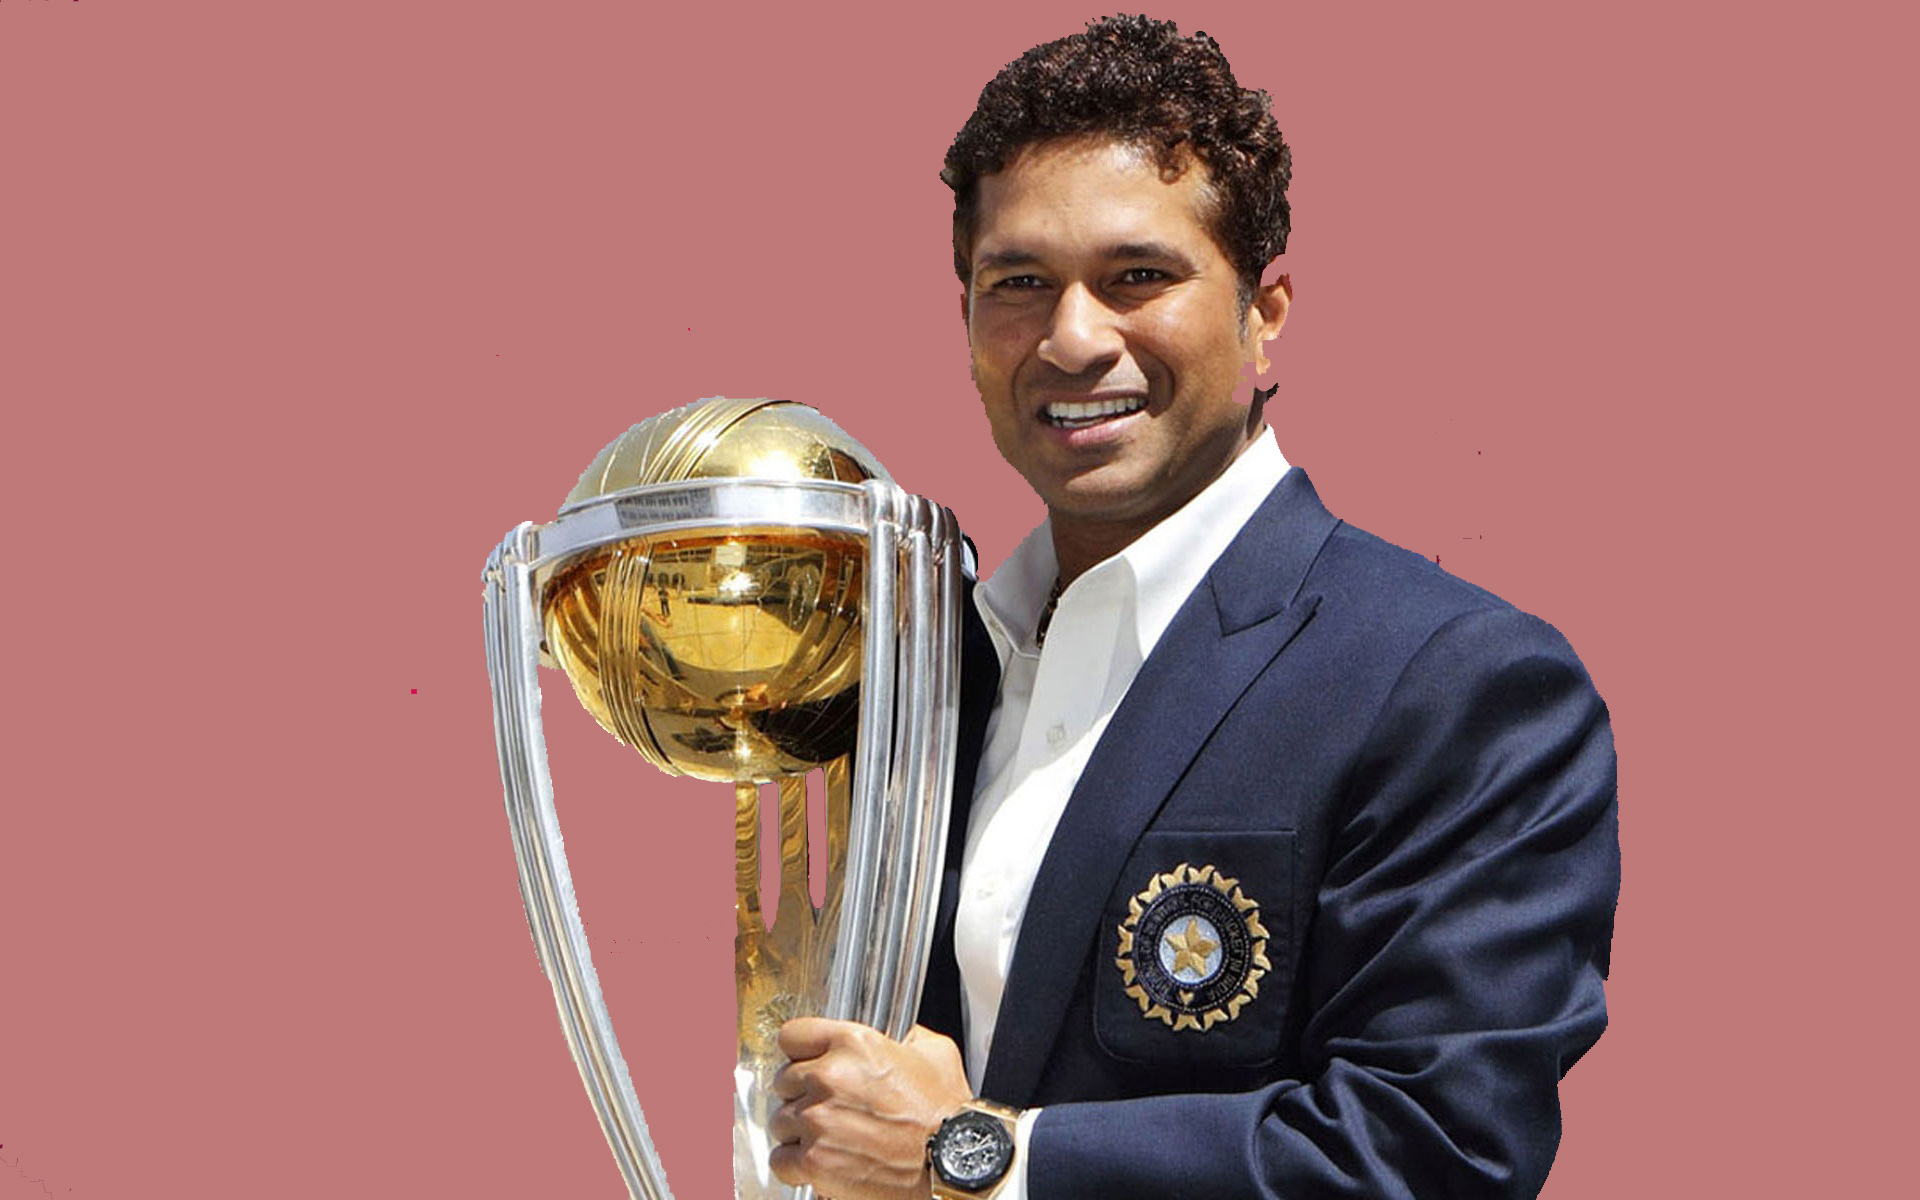 Master Sachin Tendulkar Wonderful Style Look With World Cup Pose Background Mobile Hd Free Desktop Wallpaper